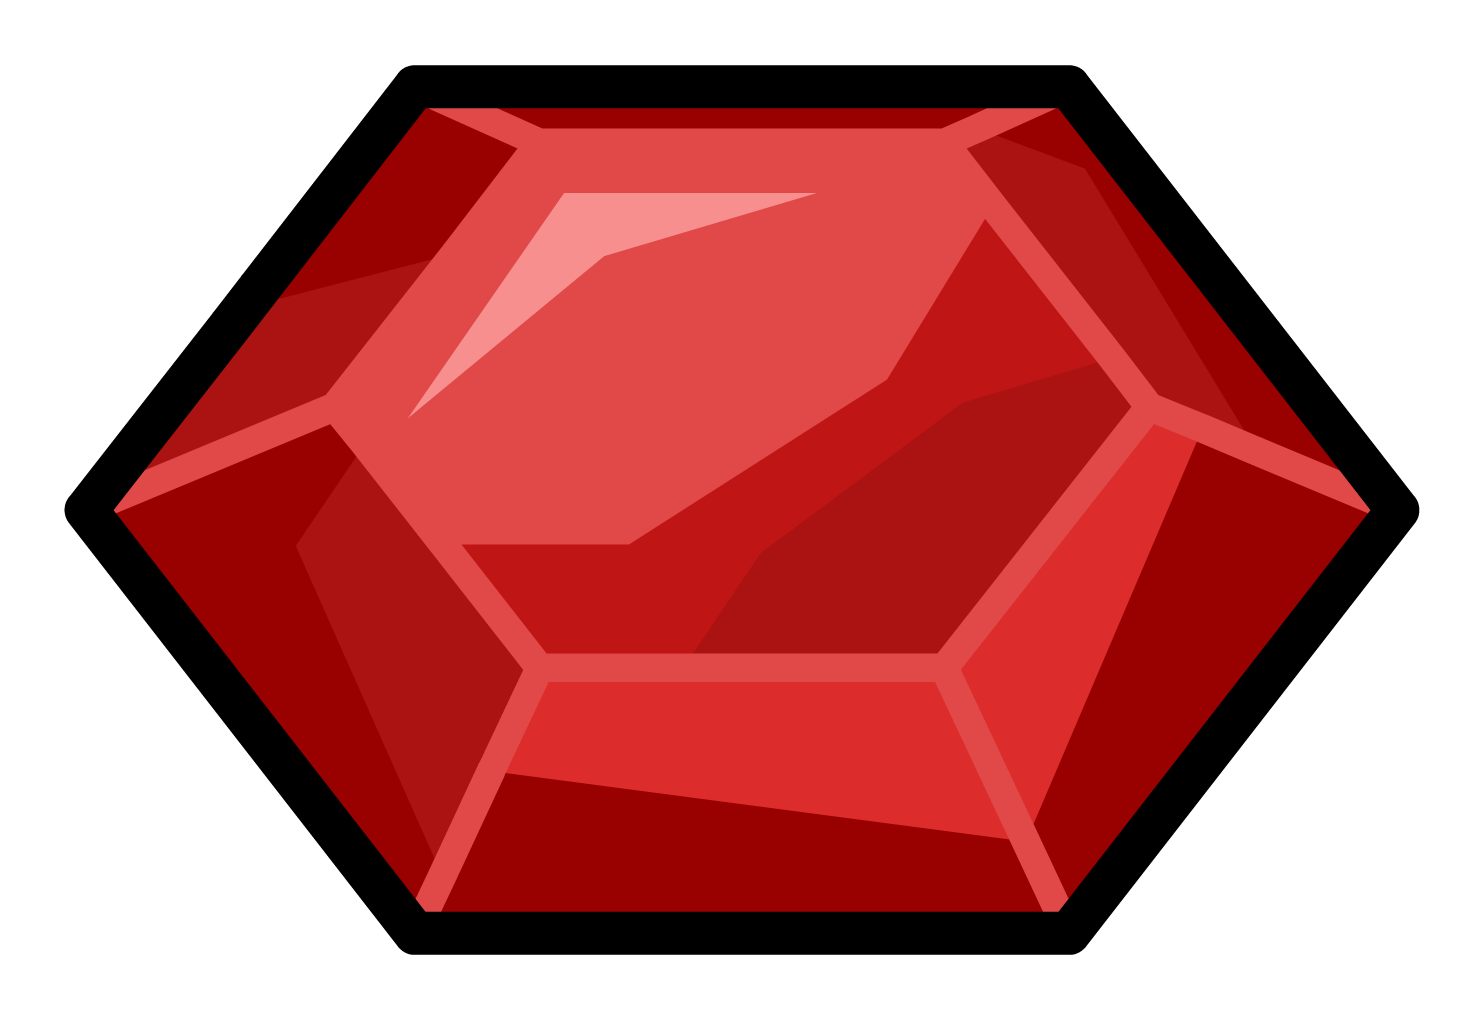 Stone gem png image. Ruby transparent banner freeuse library